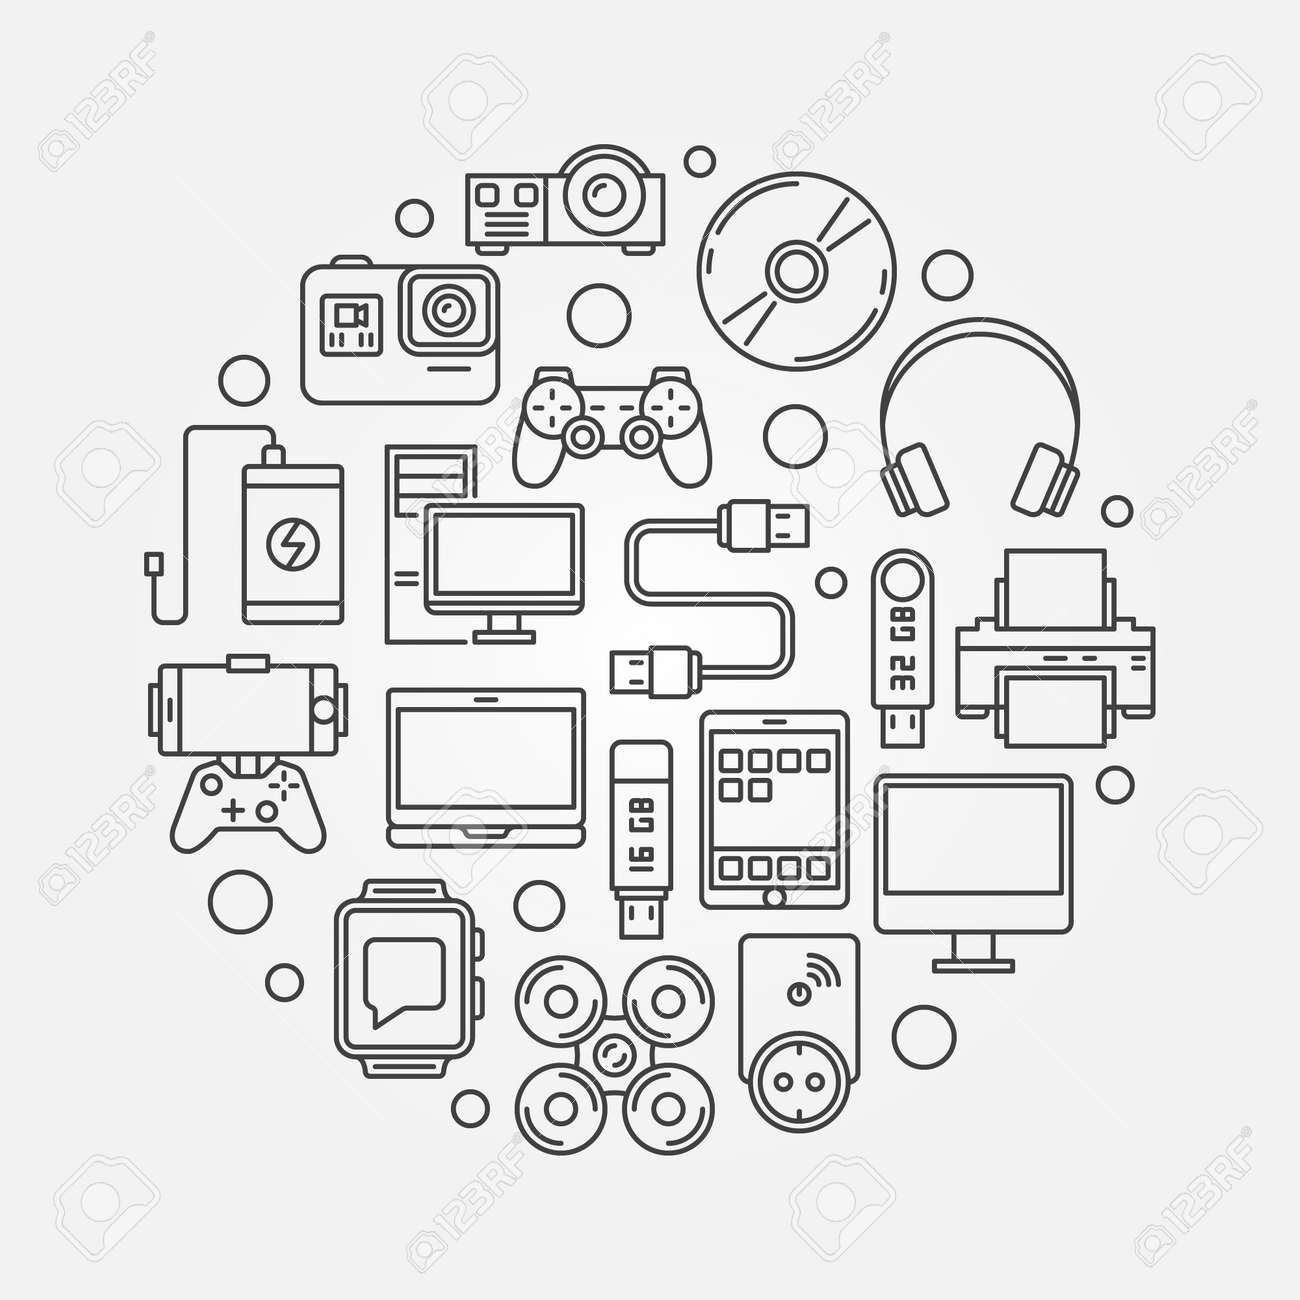 Gadgets And Devices Round Illustration Vector Linear Symbol